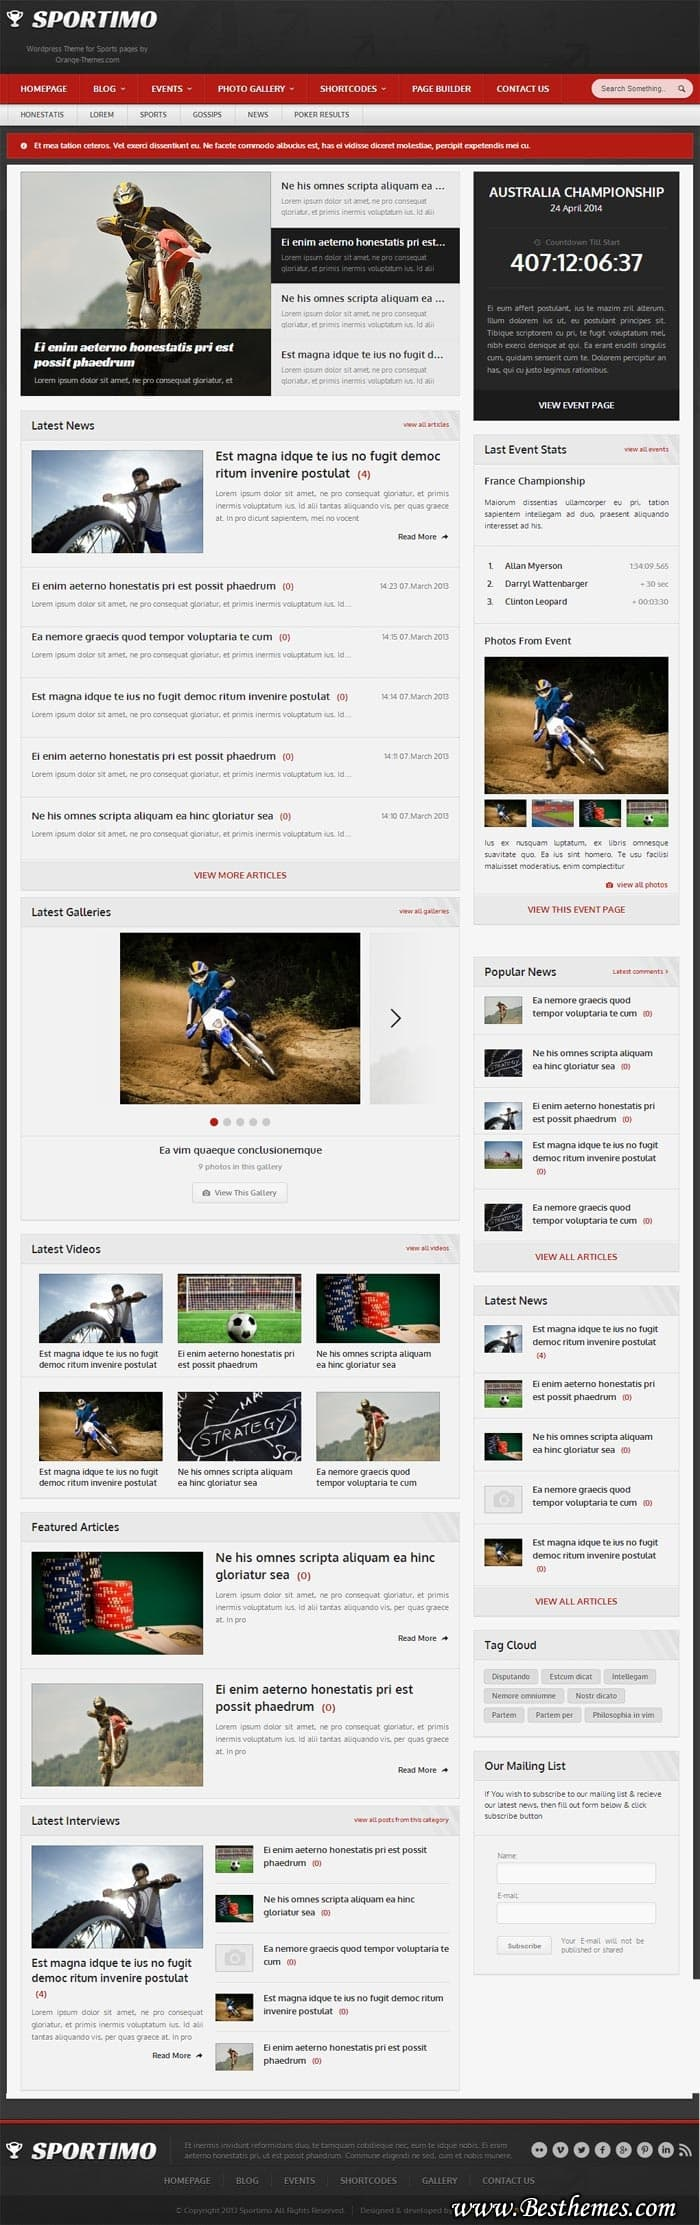 Sportimo WordPress Theme, best magazine WordPress theme, responsive magazine WordPress theme, best event magazine WordPress theme